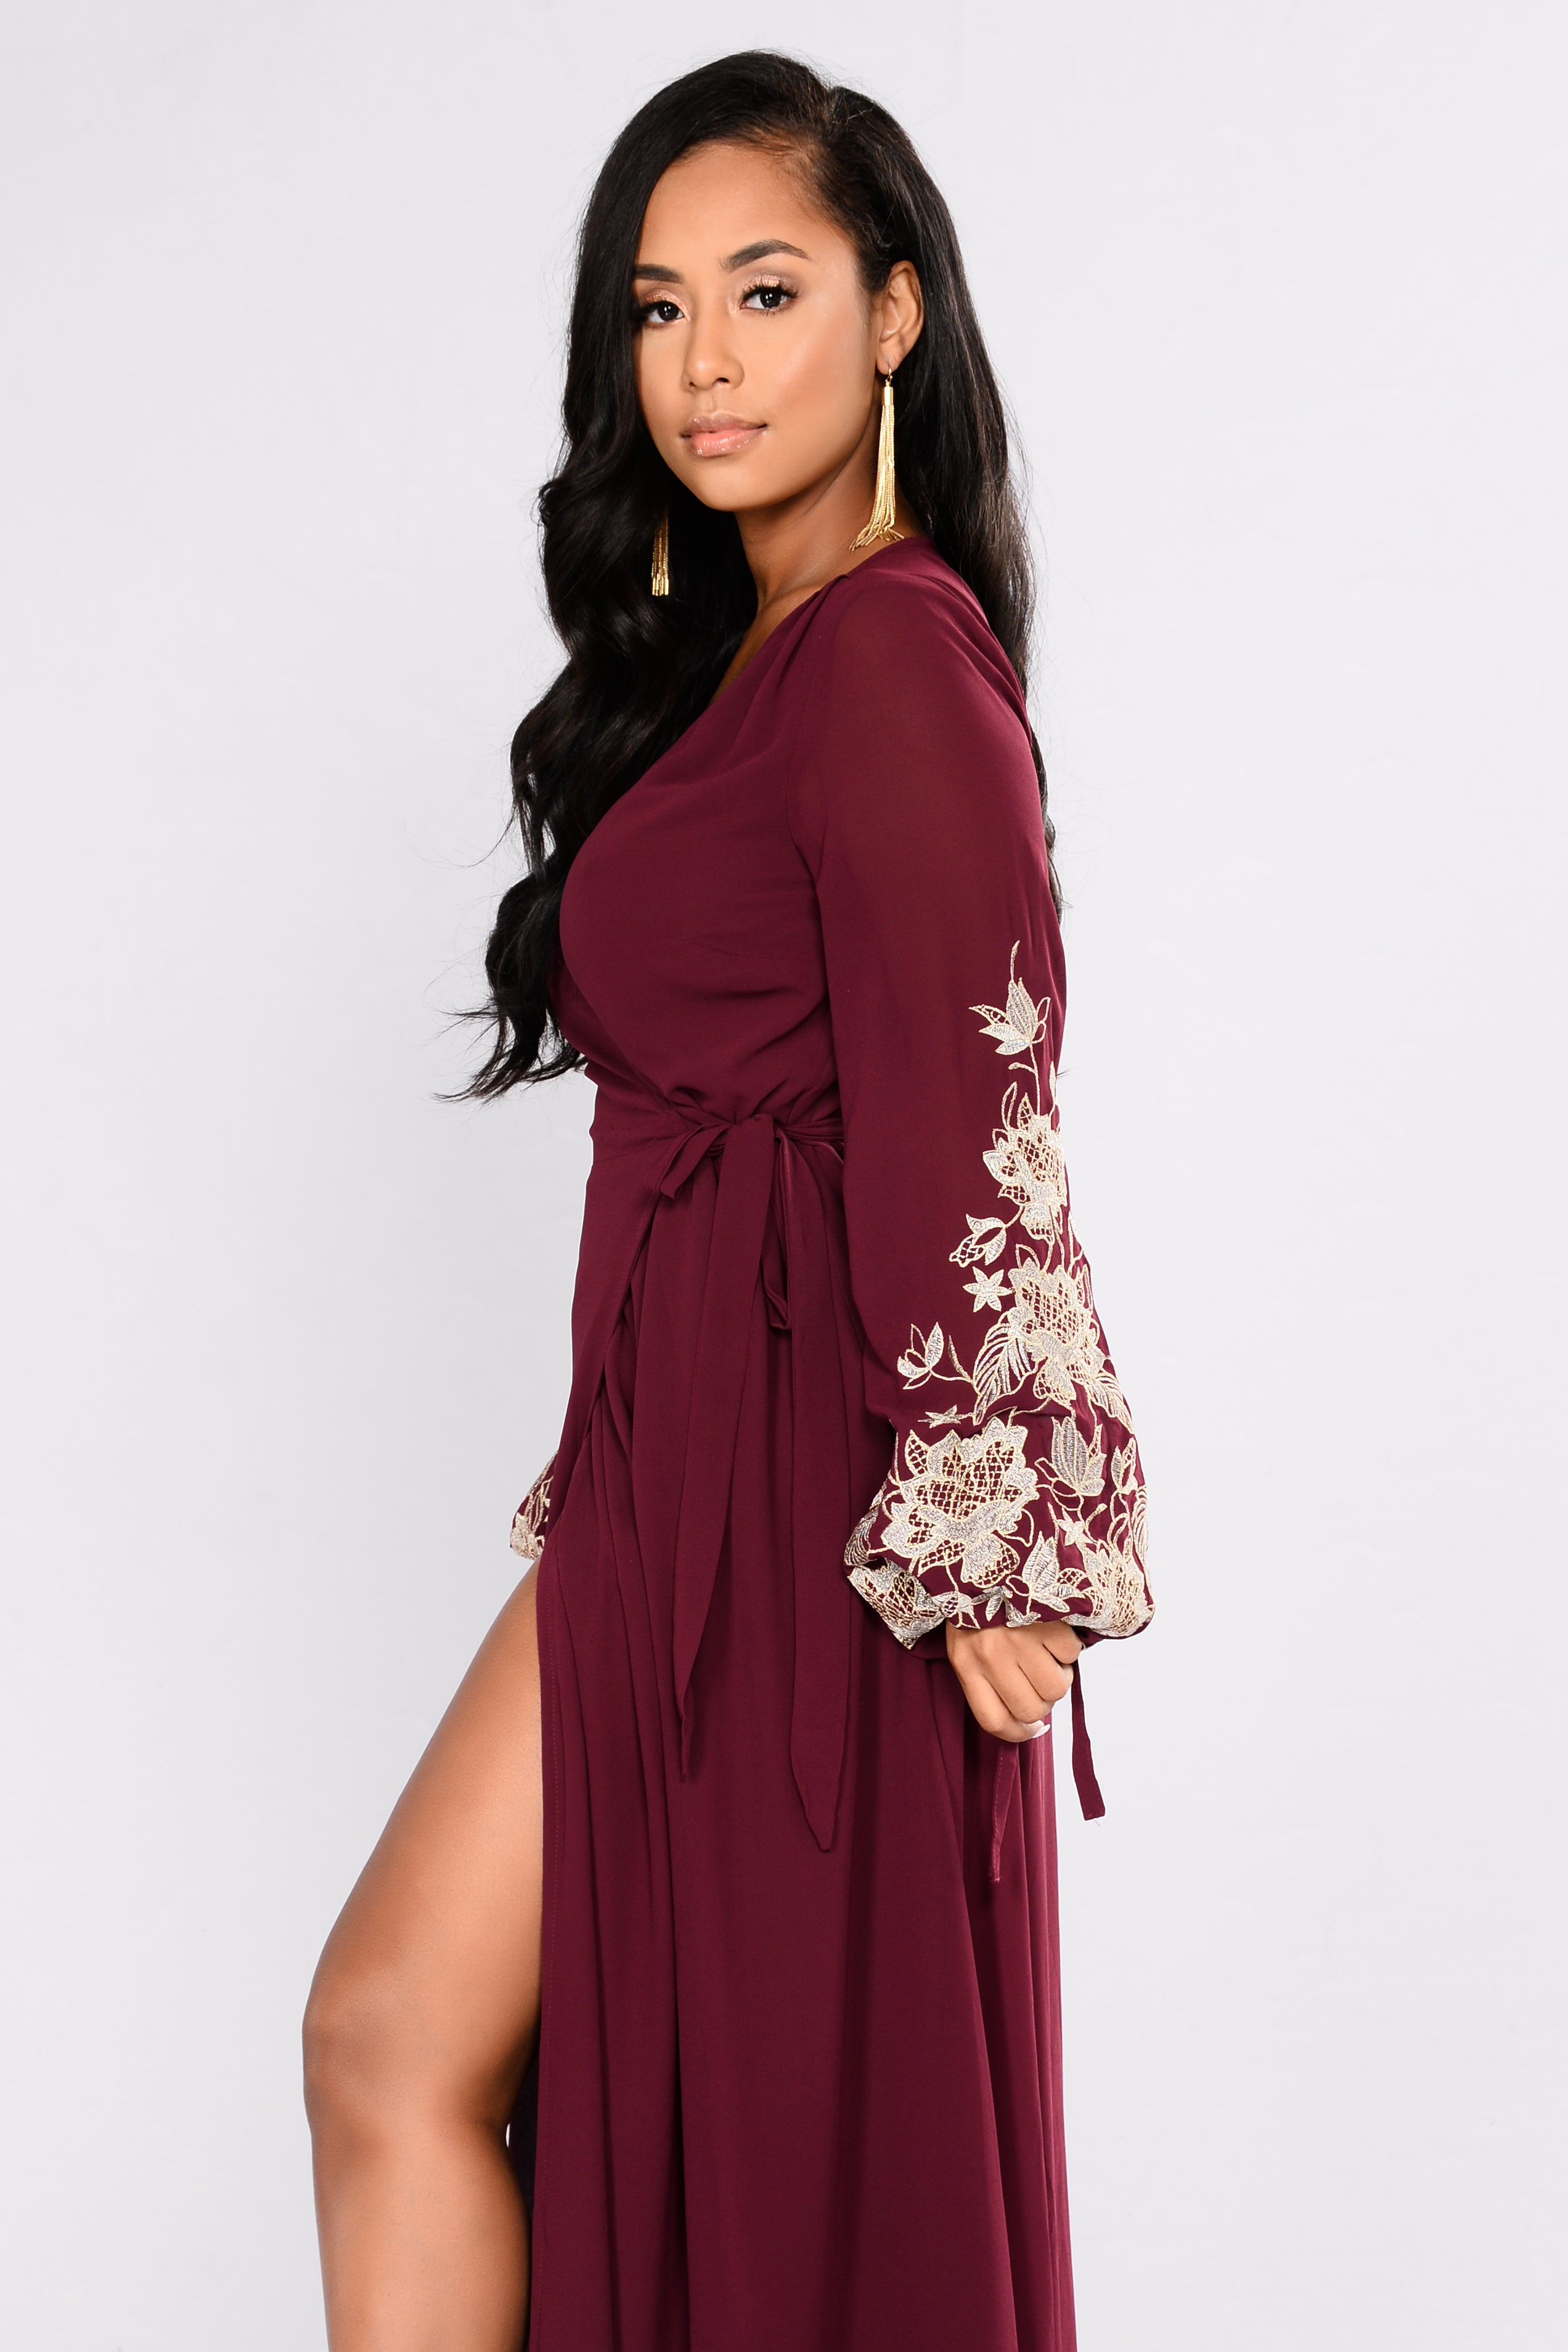 037226ccfc Trophy Wife Embroidered Dress - Wine